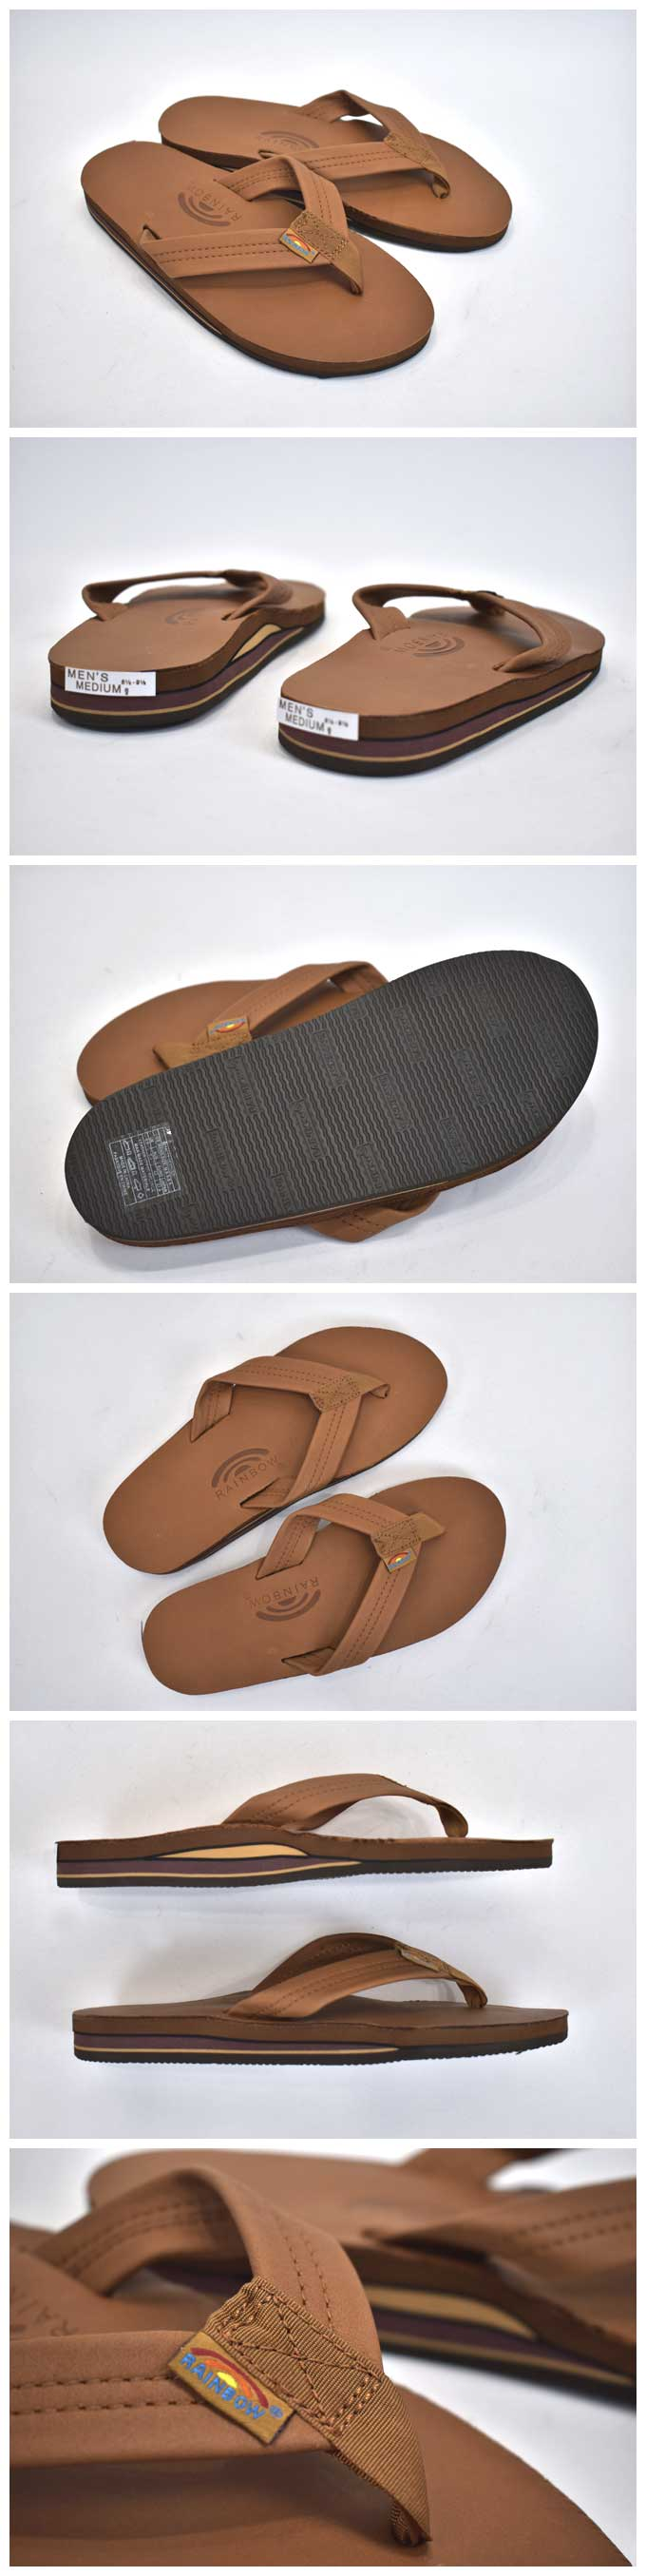 Rainbow Sandals Classic Leather(302Alts Double Layer)